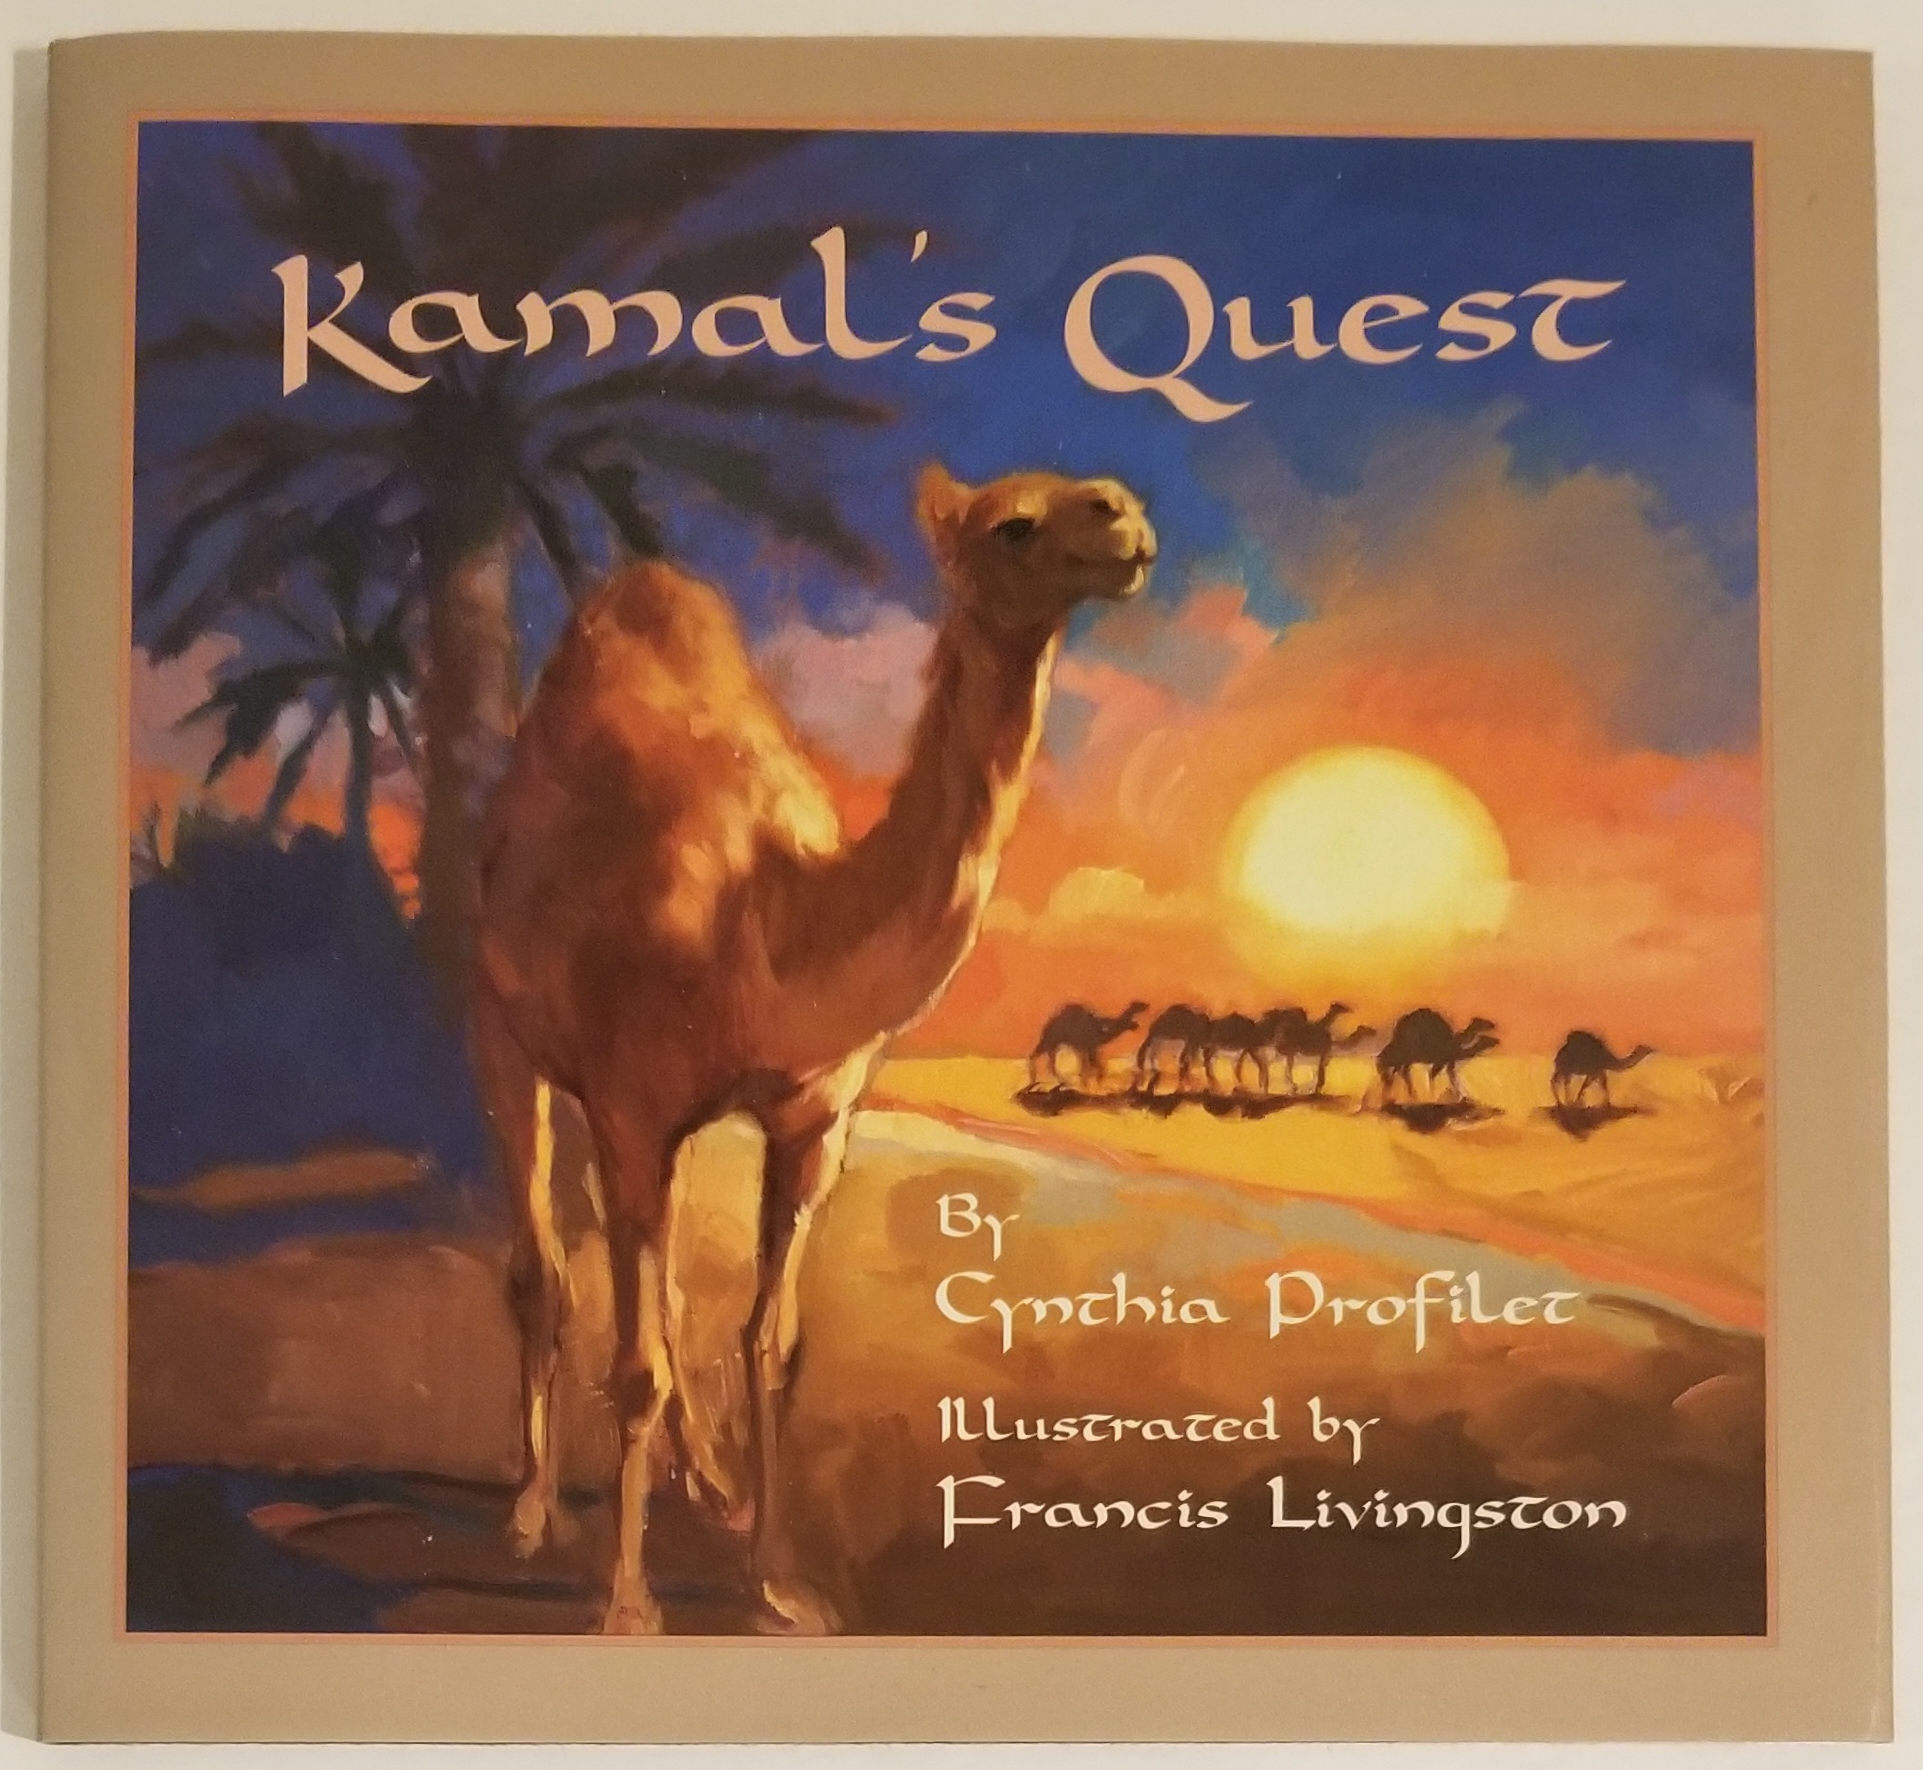 KAMAL'S QUEST. Illustrated by Francis Livingston. Cynthia Profilet.